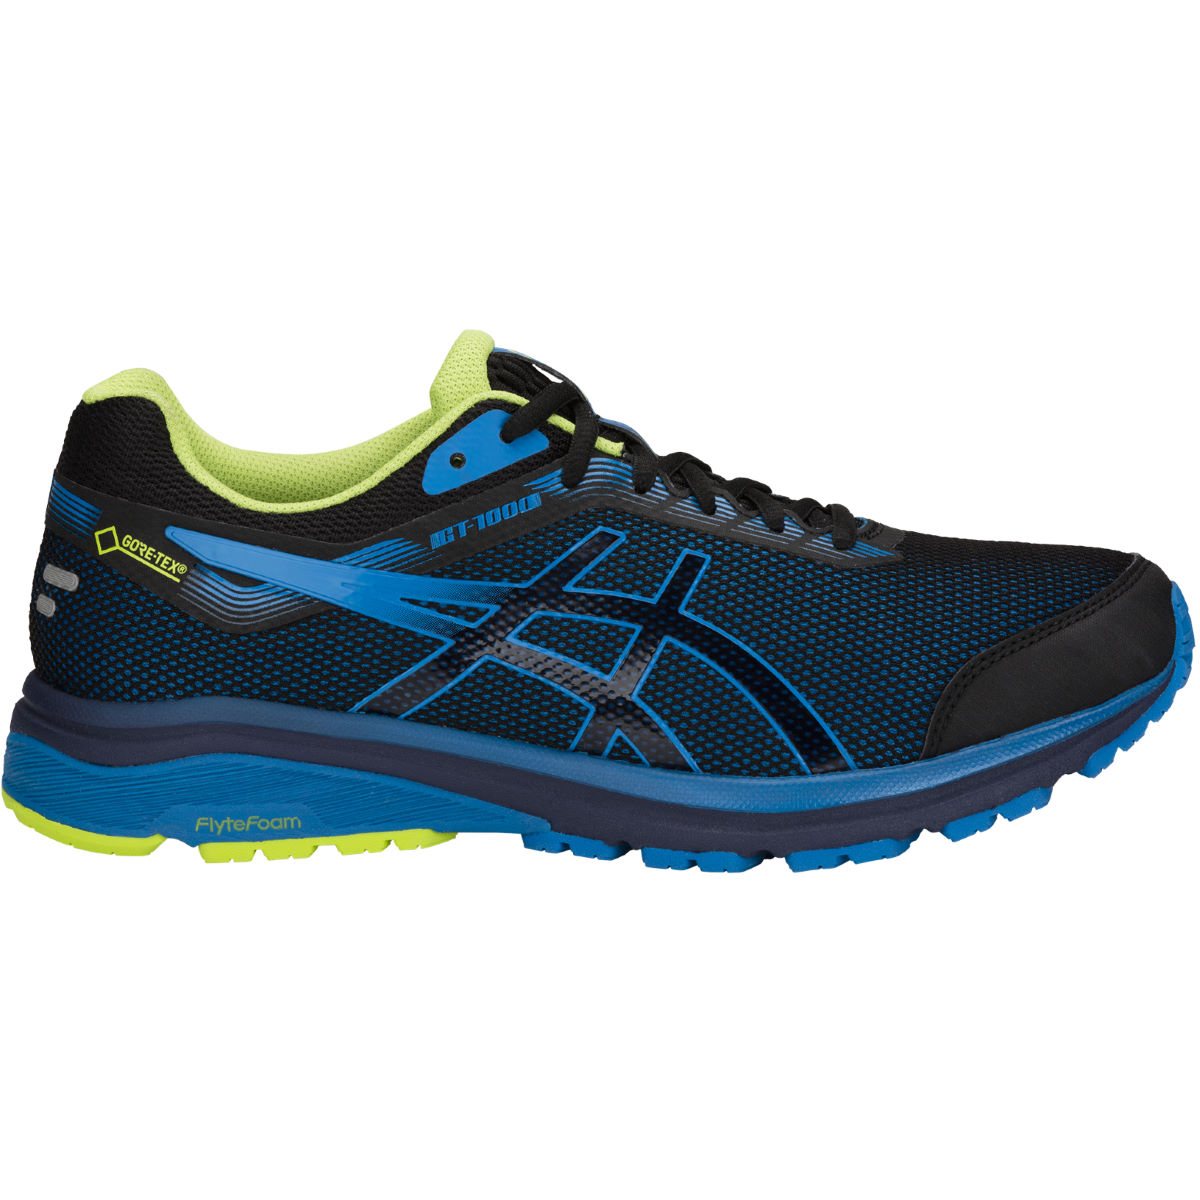 Asics GT-1000 7 GTX Shoes - Zapatillas de running